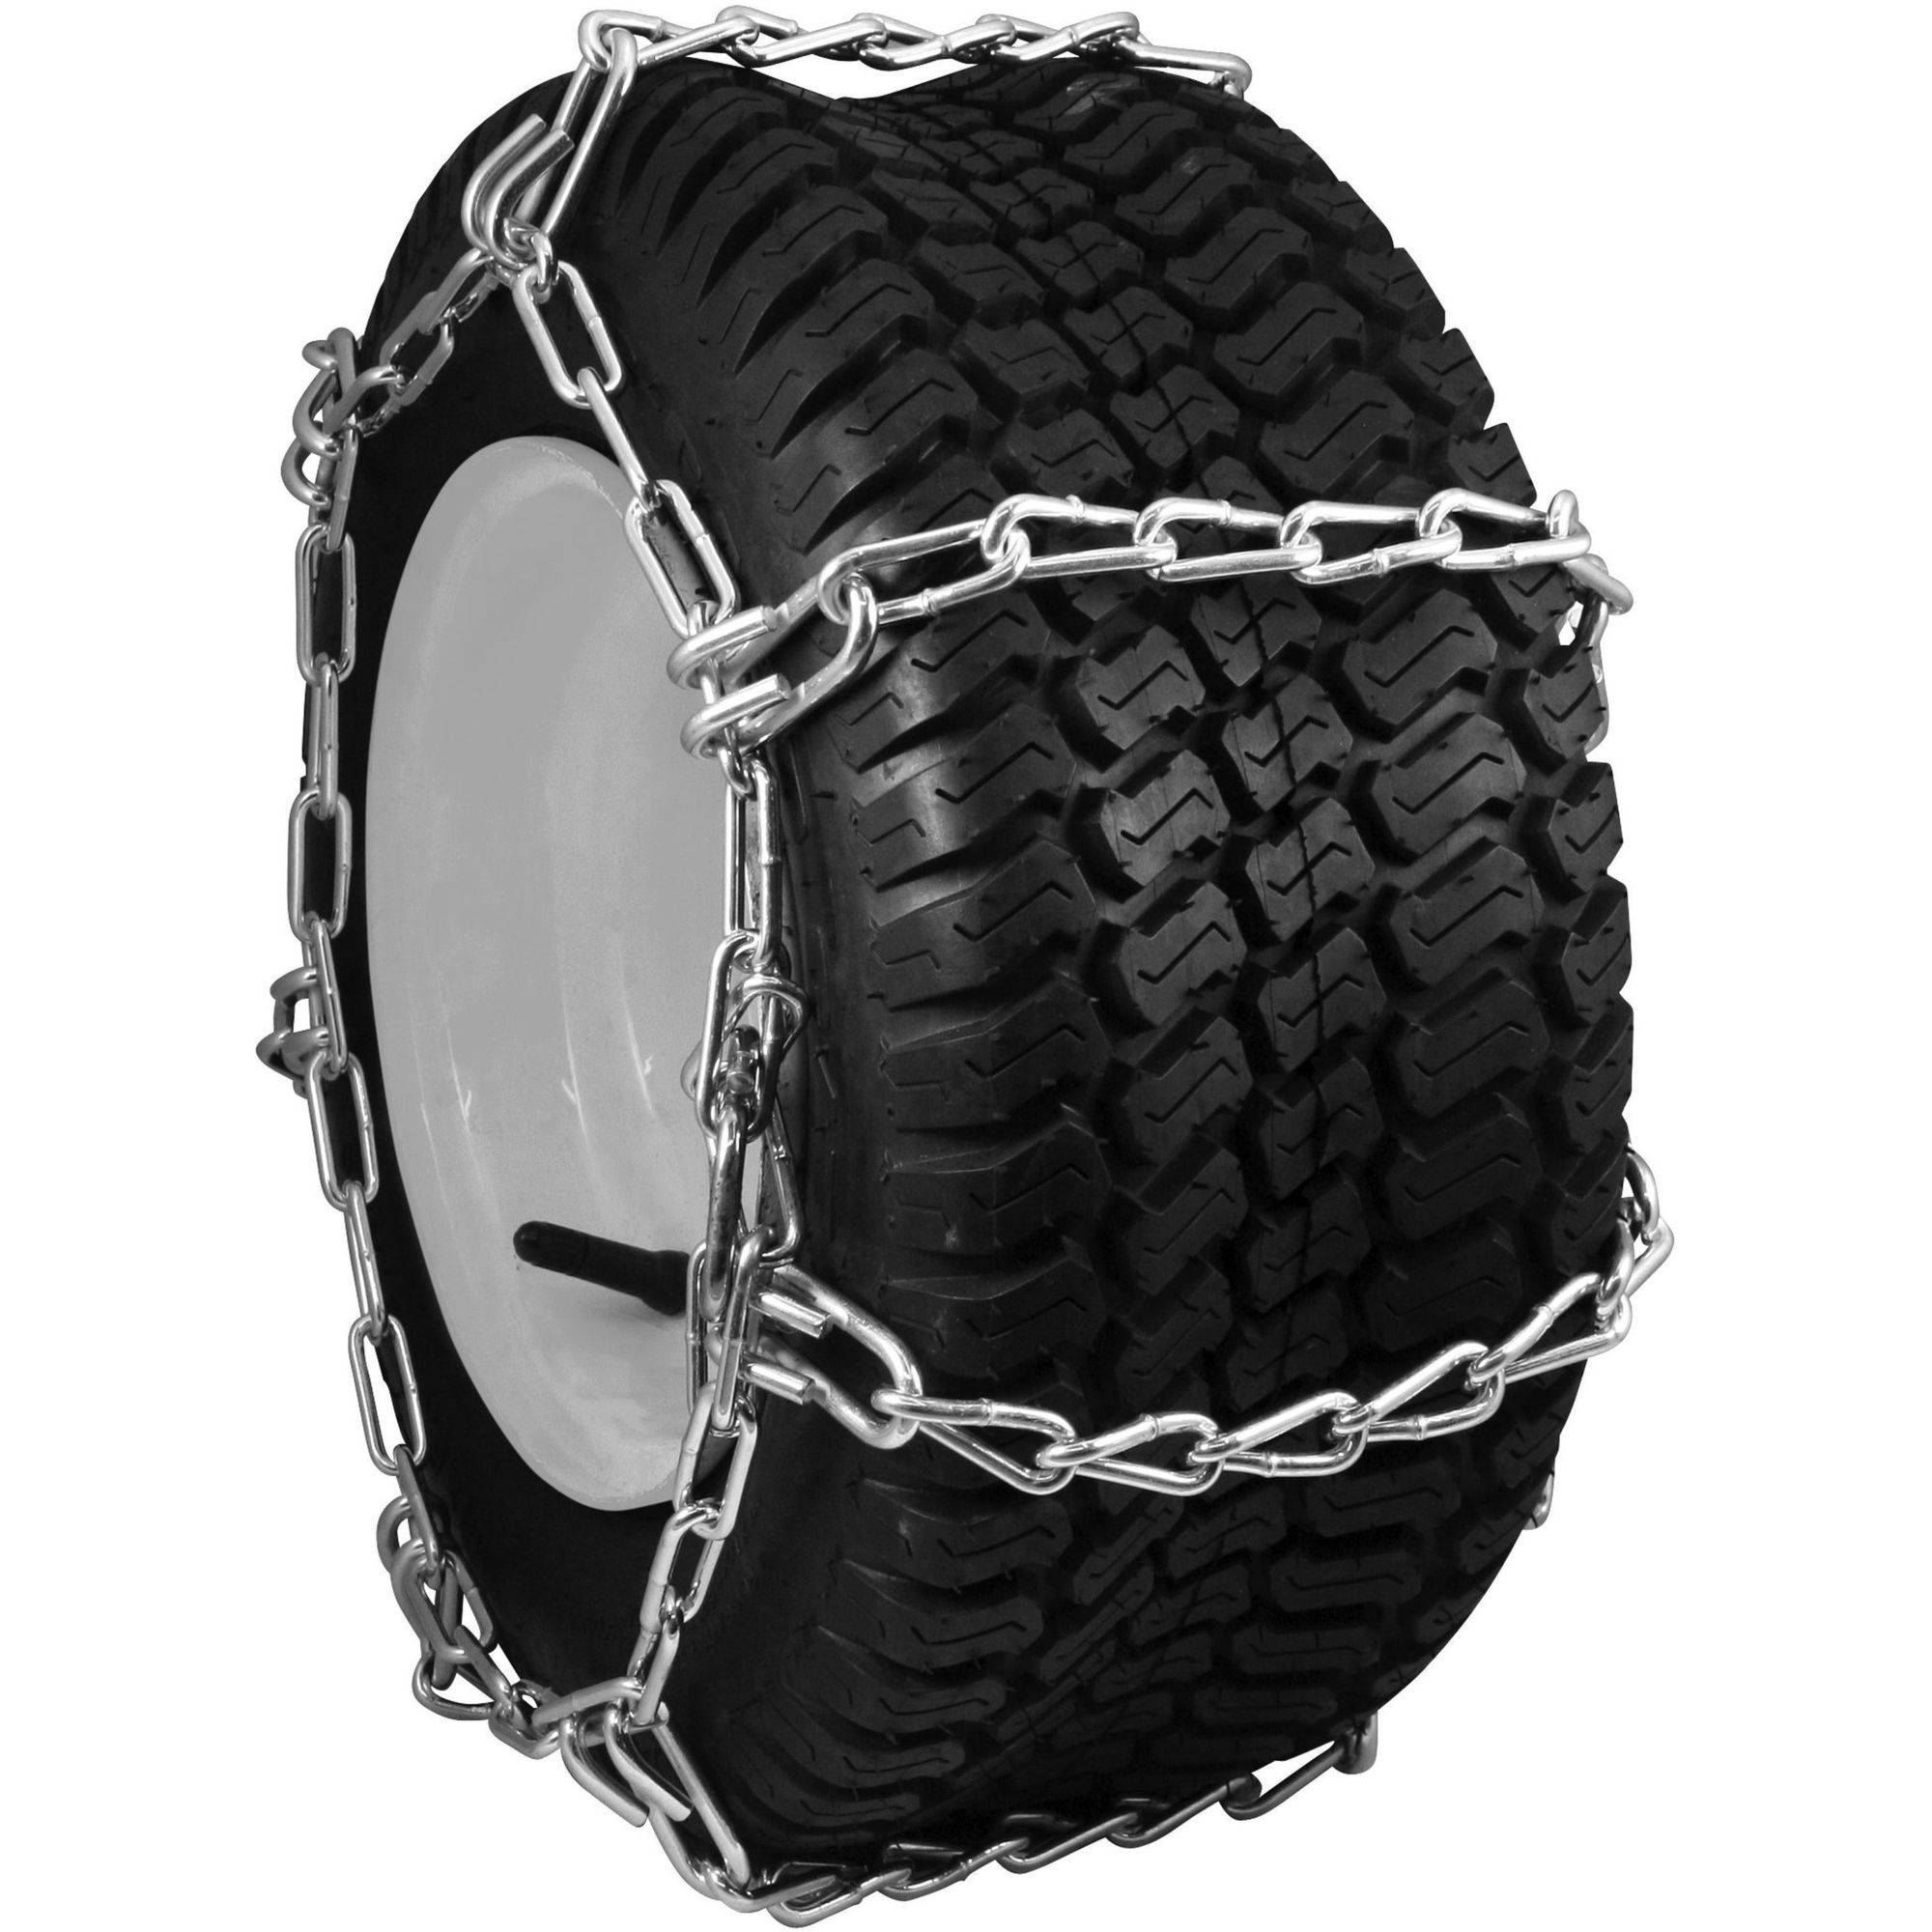 Snower And Lawn Tractor Tire Chains 20x8 00x8 4 Link Ing